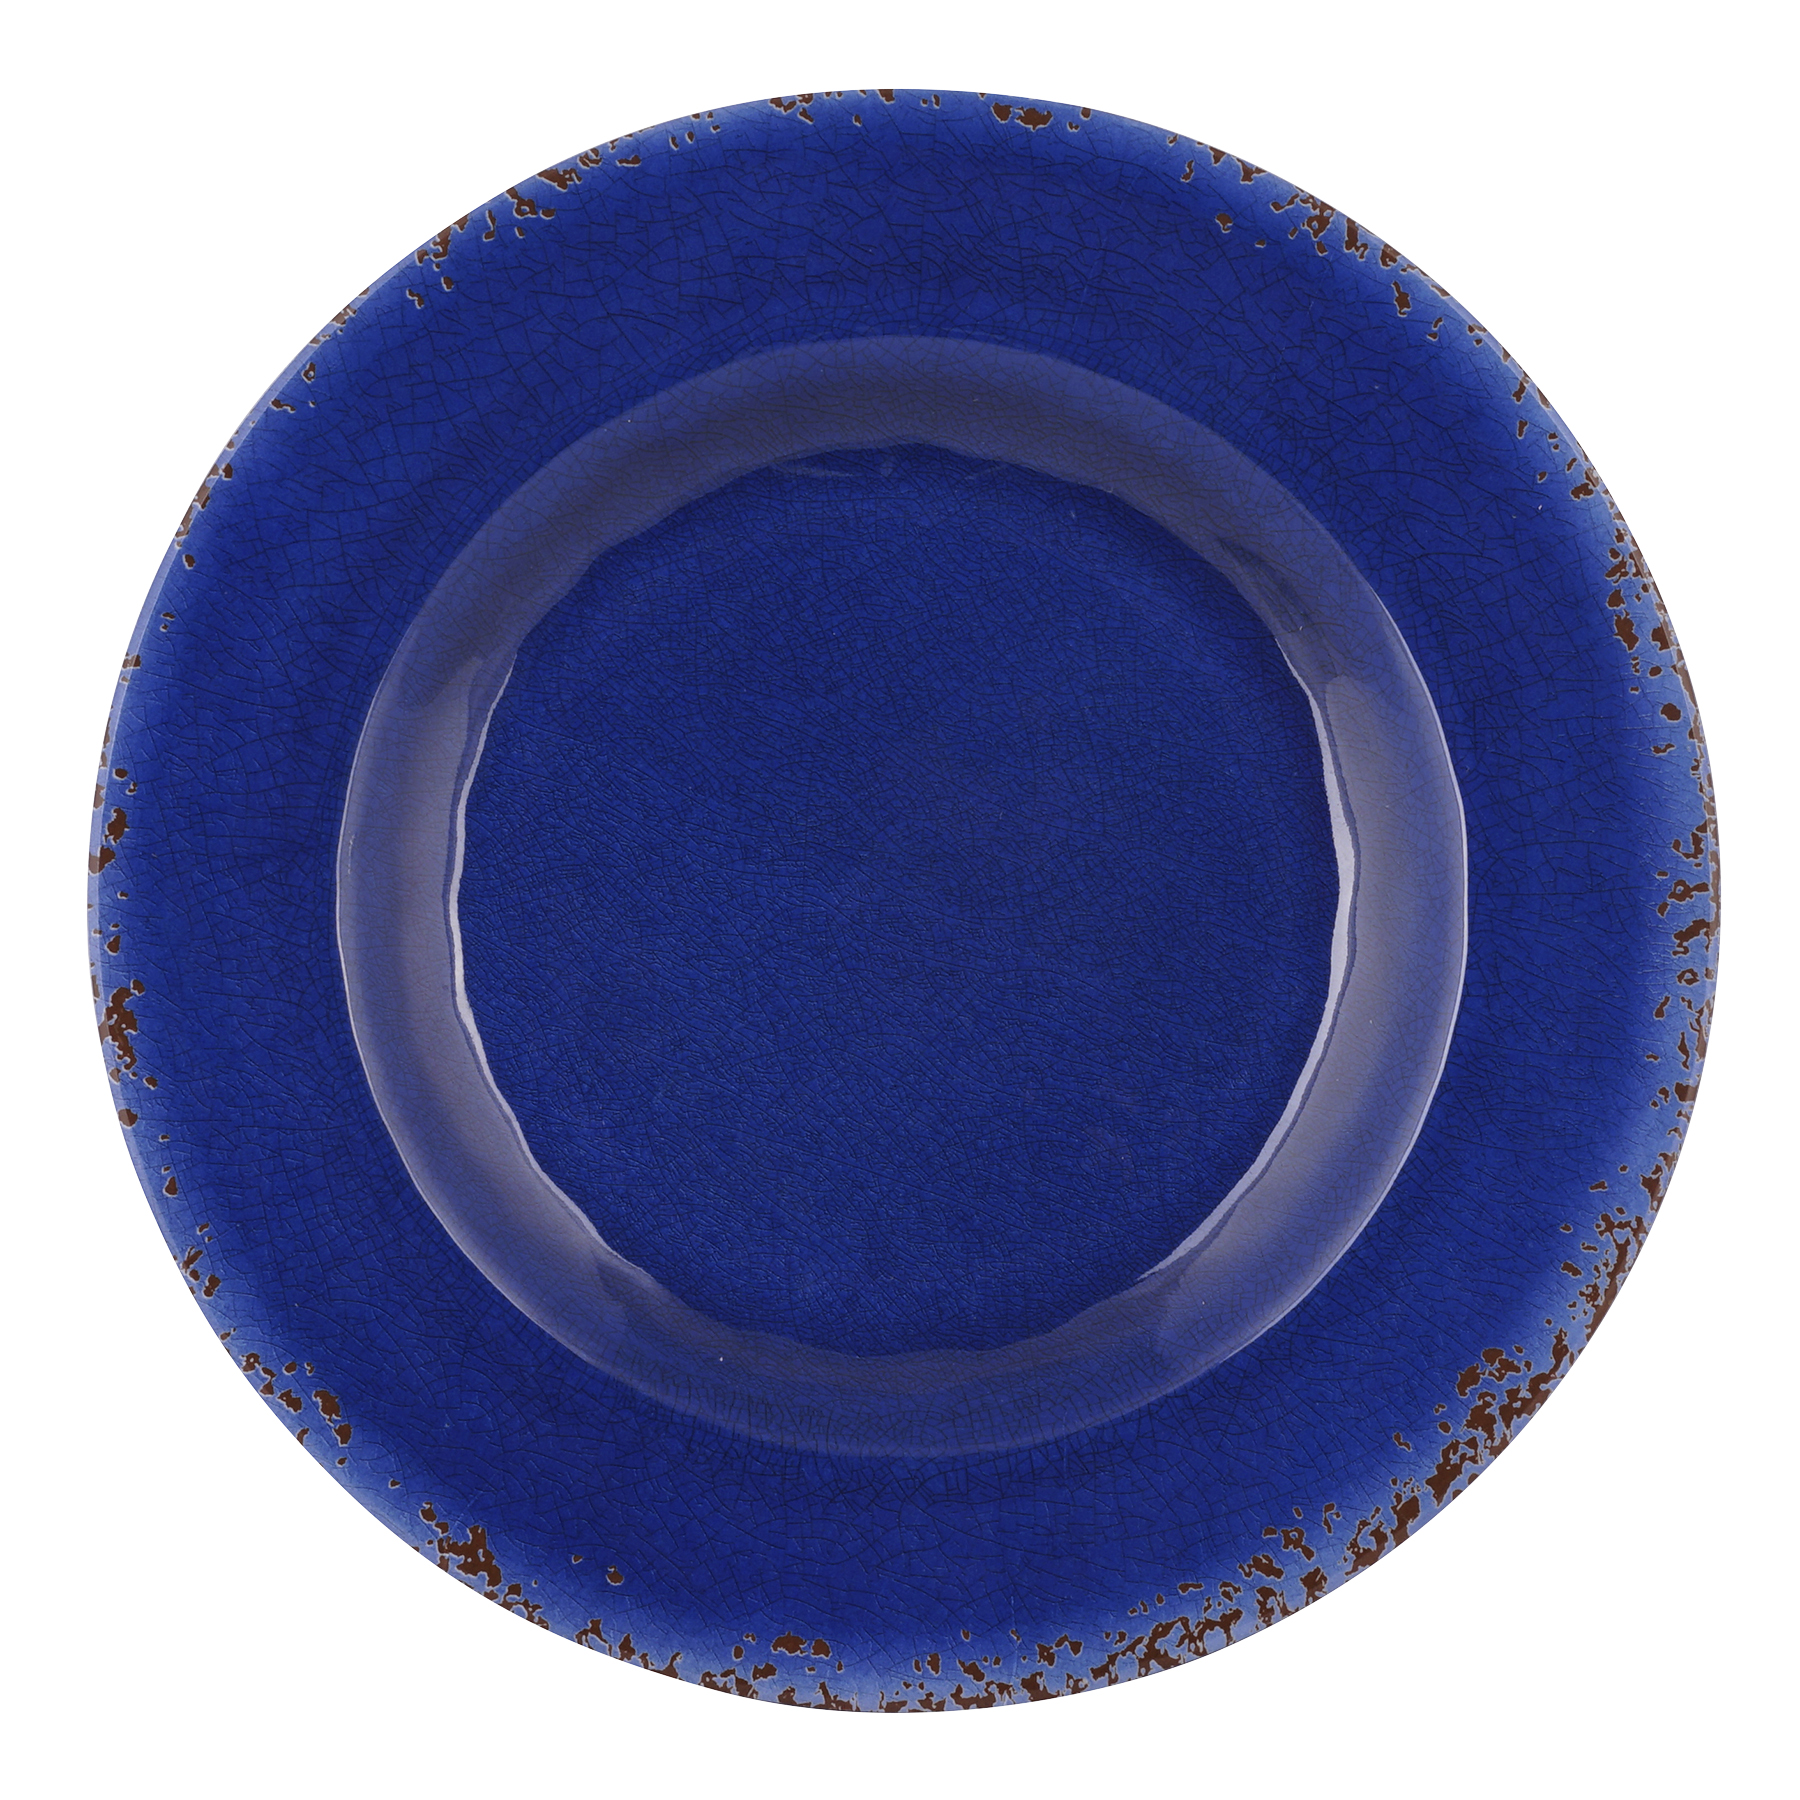 sc 1 st  Michaels Stores & Buy the Melamine Plate by Ashland™ at Michaels